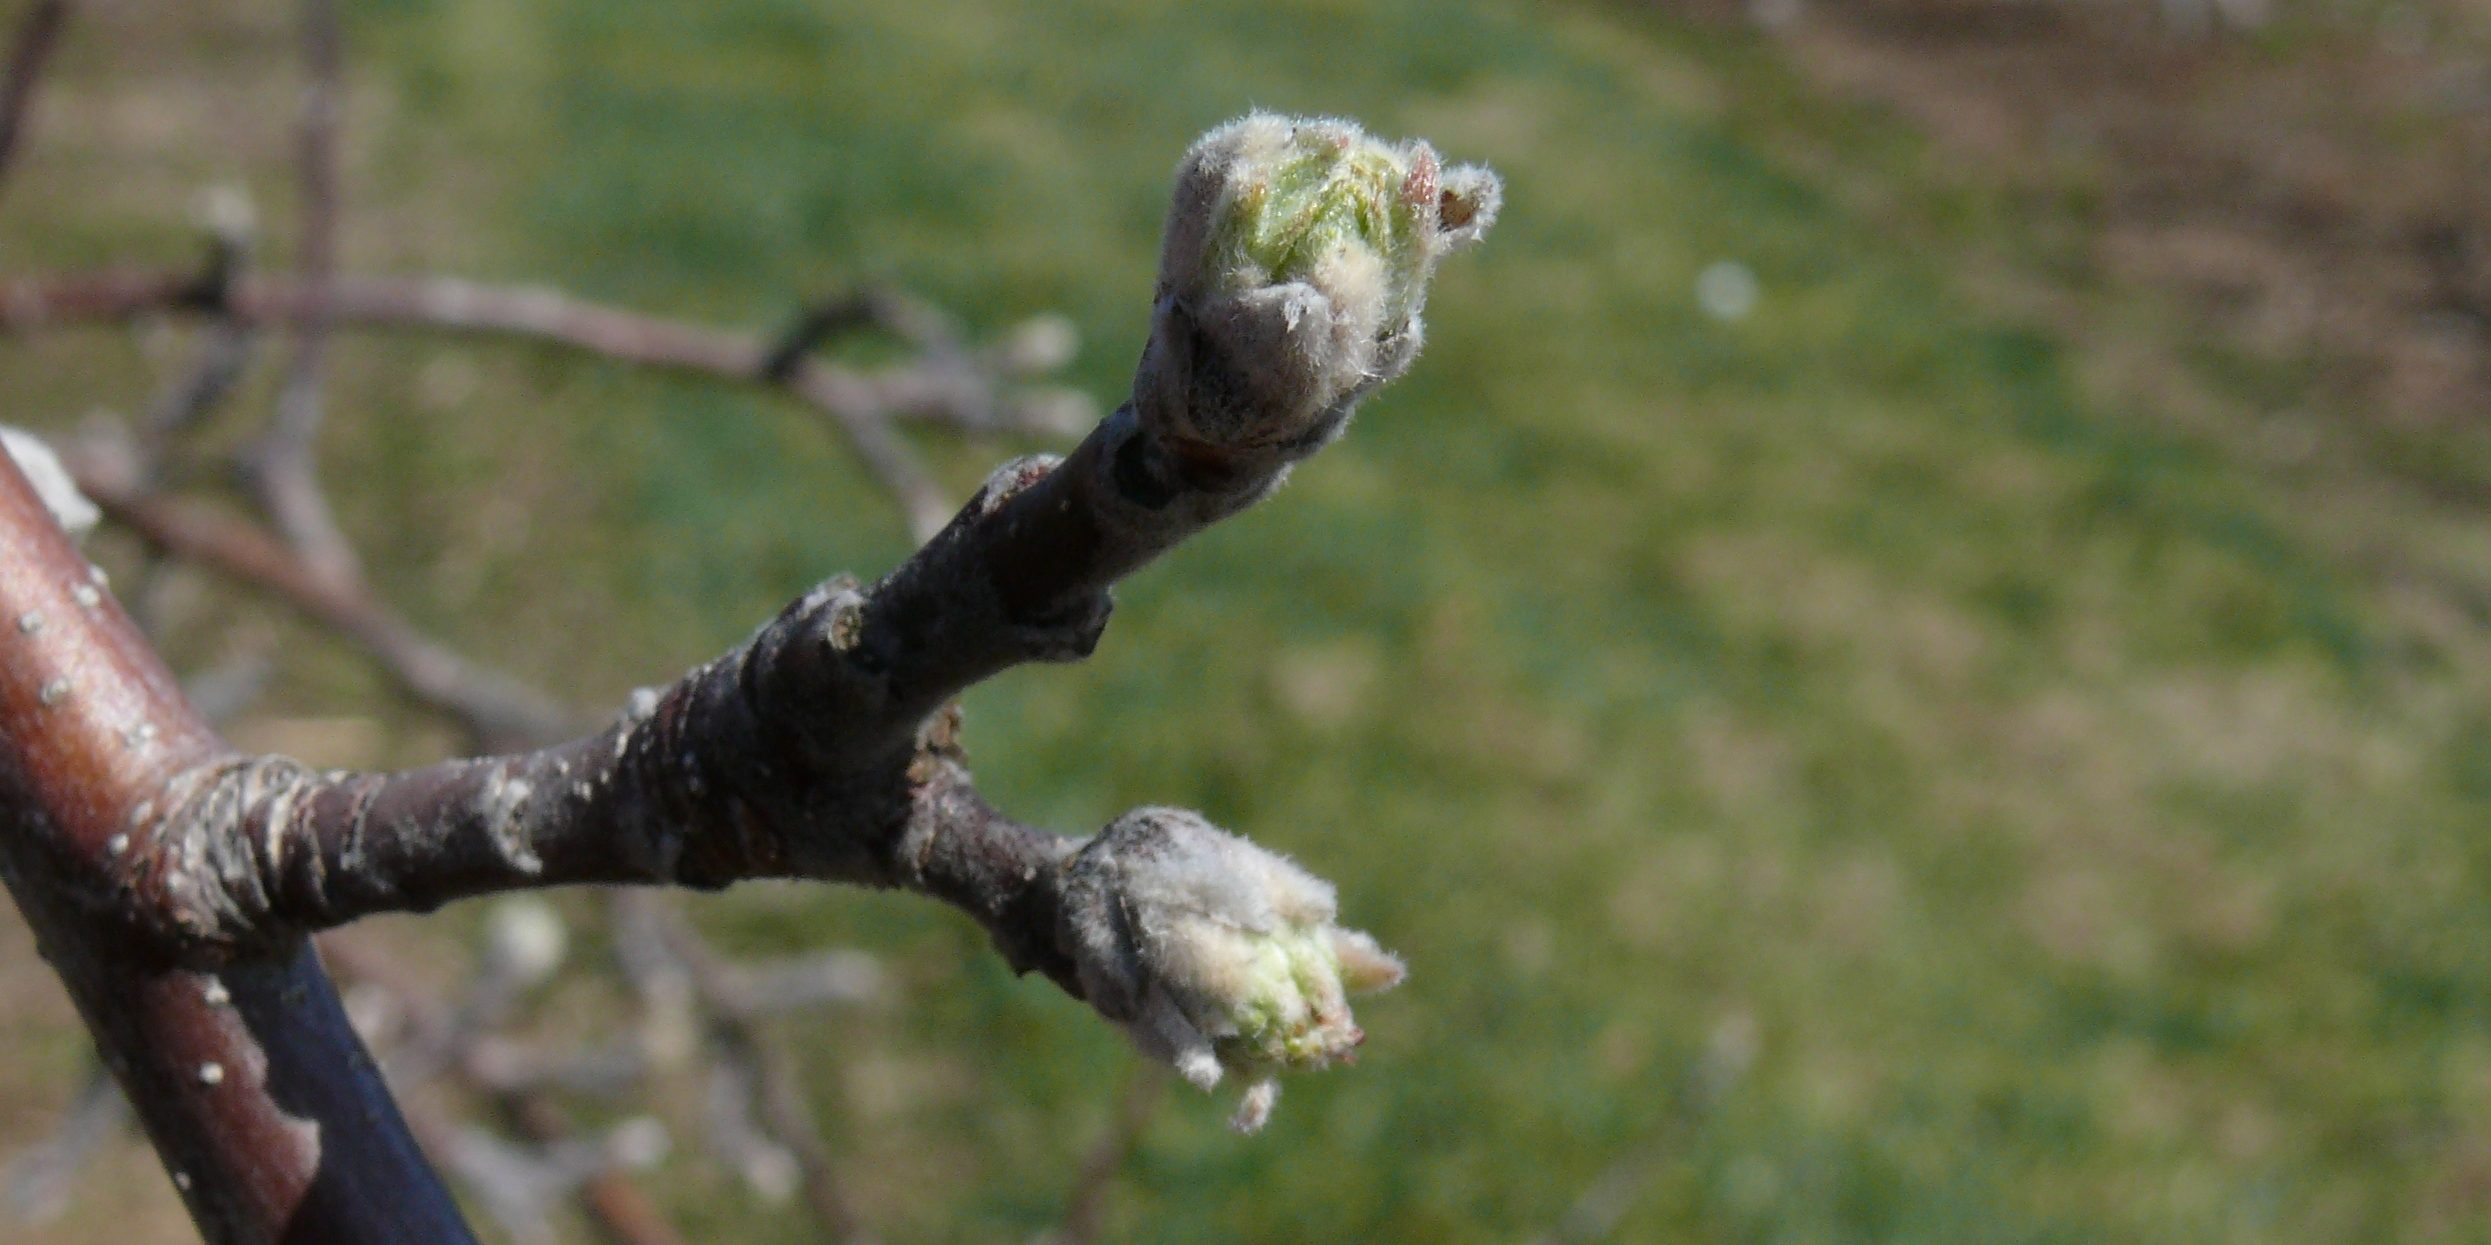 Photo of vegetative buds on apple branch showing green tissue